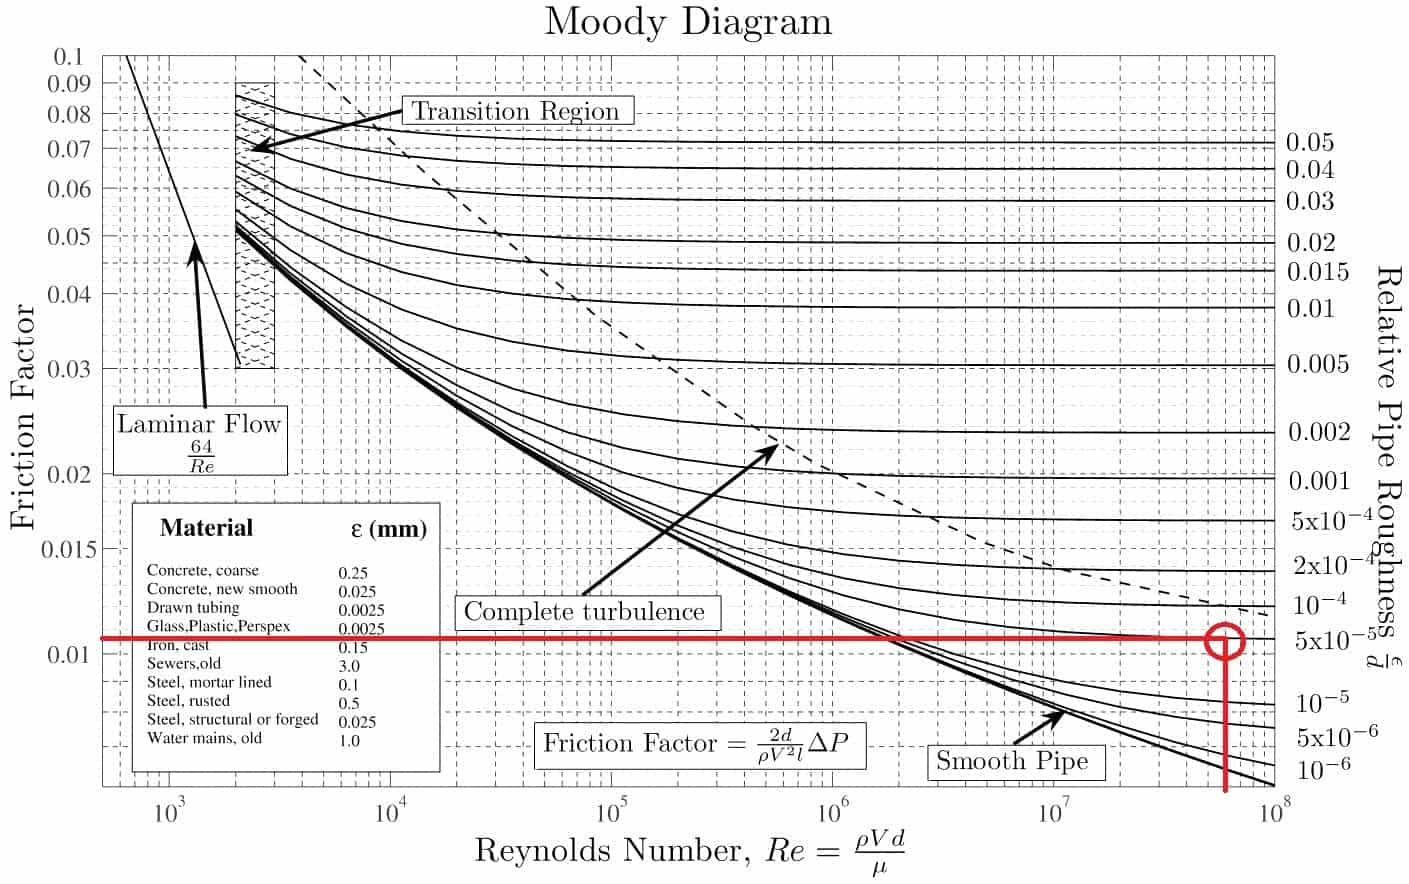 Moody diagram friction loss example moody chart source donebythesecondlaw at the english language wikipedia cc by sa 30 httpscommonsmediawindexpcurid4681366 ccuart Gallery